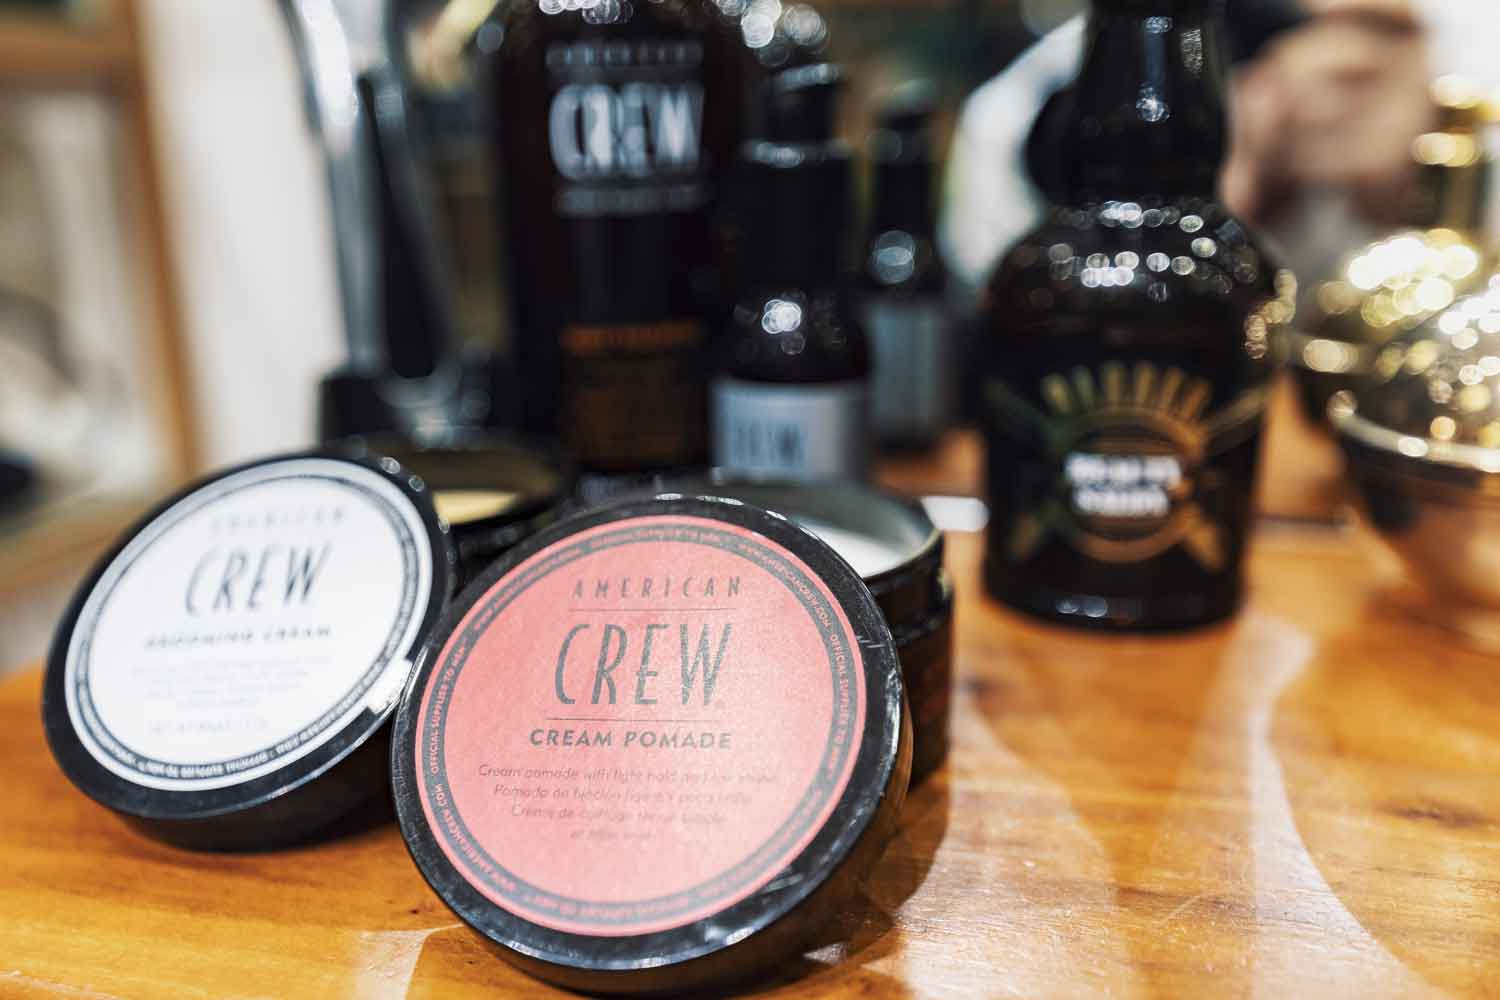 American Crew Hair Products. Hair Pomade, Hair Fibre, Hair Clay.